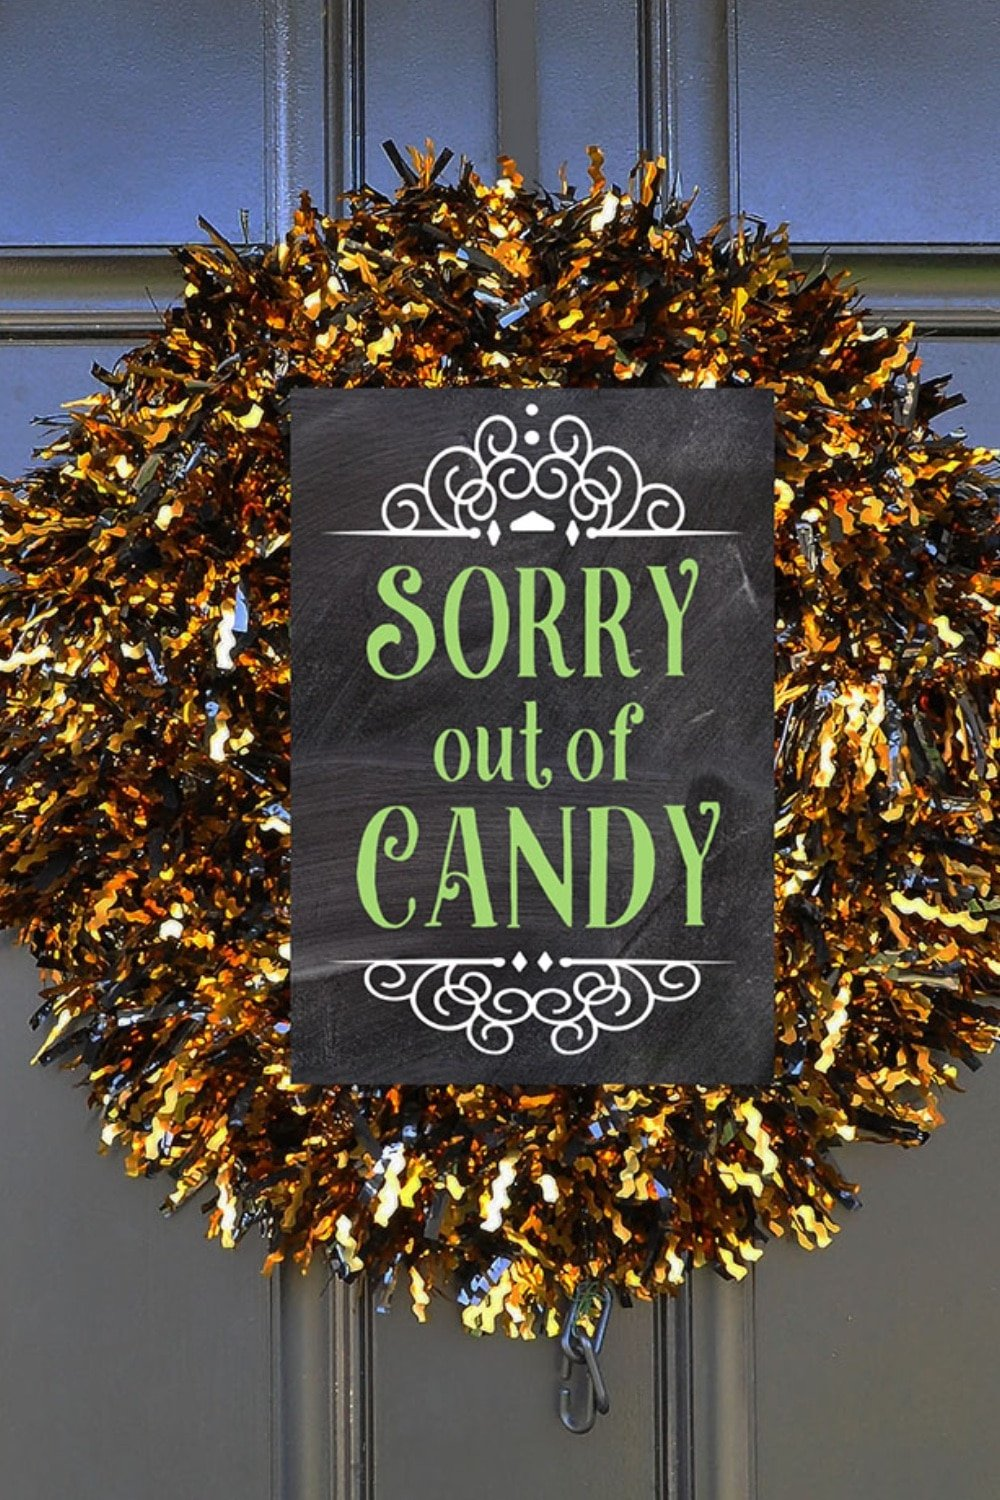 Halloween Porch Signs: Out of Candy, Not Home, Take One 2